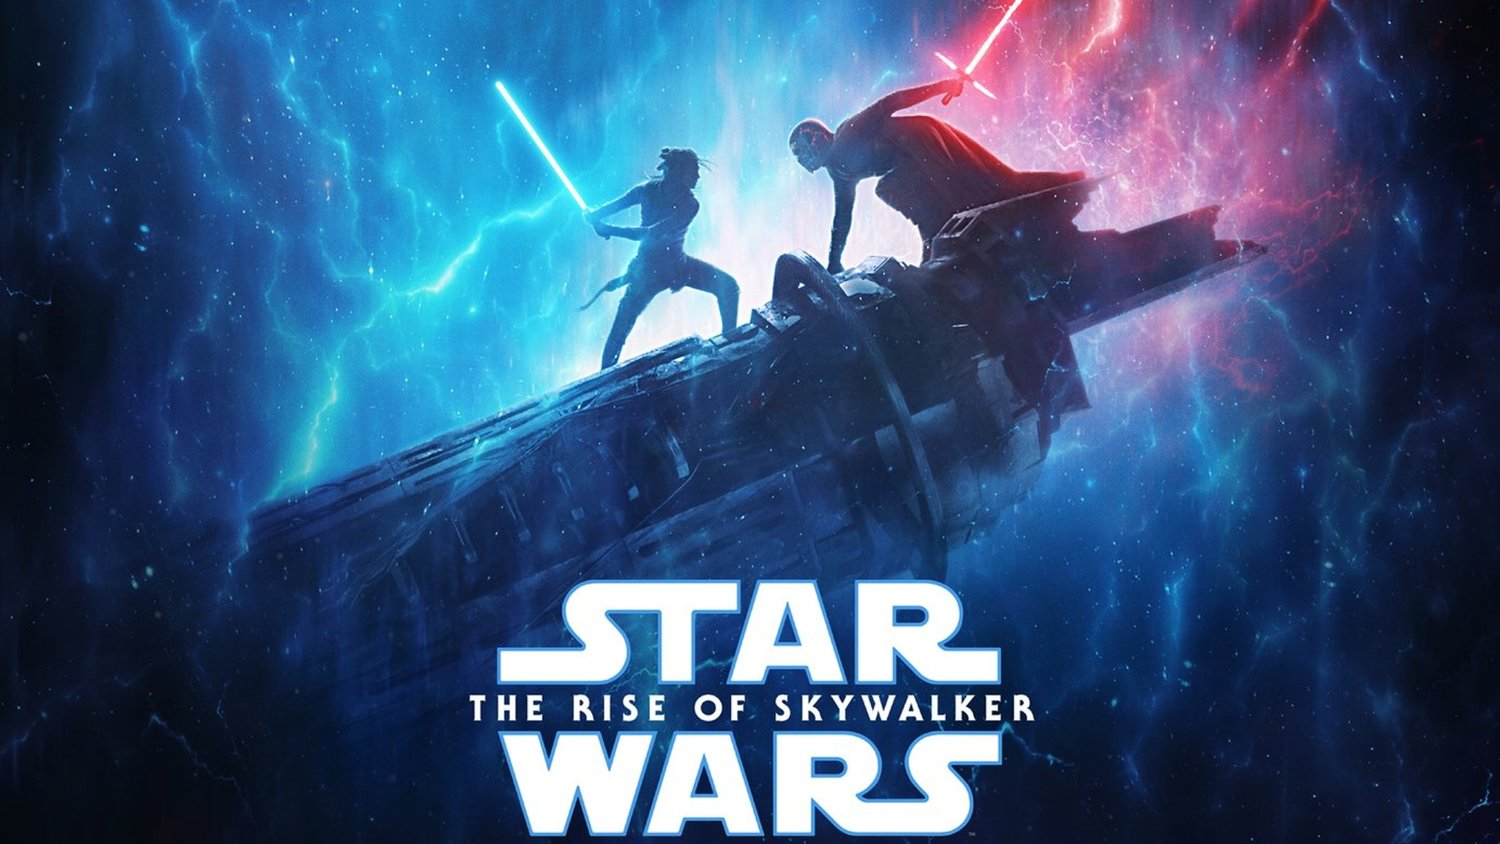 Star Wars The Rise Of Skywalker Coming Soon To Digital Dvd Blu Ray 4k What S On Disney Plus